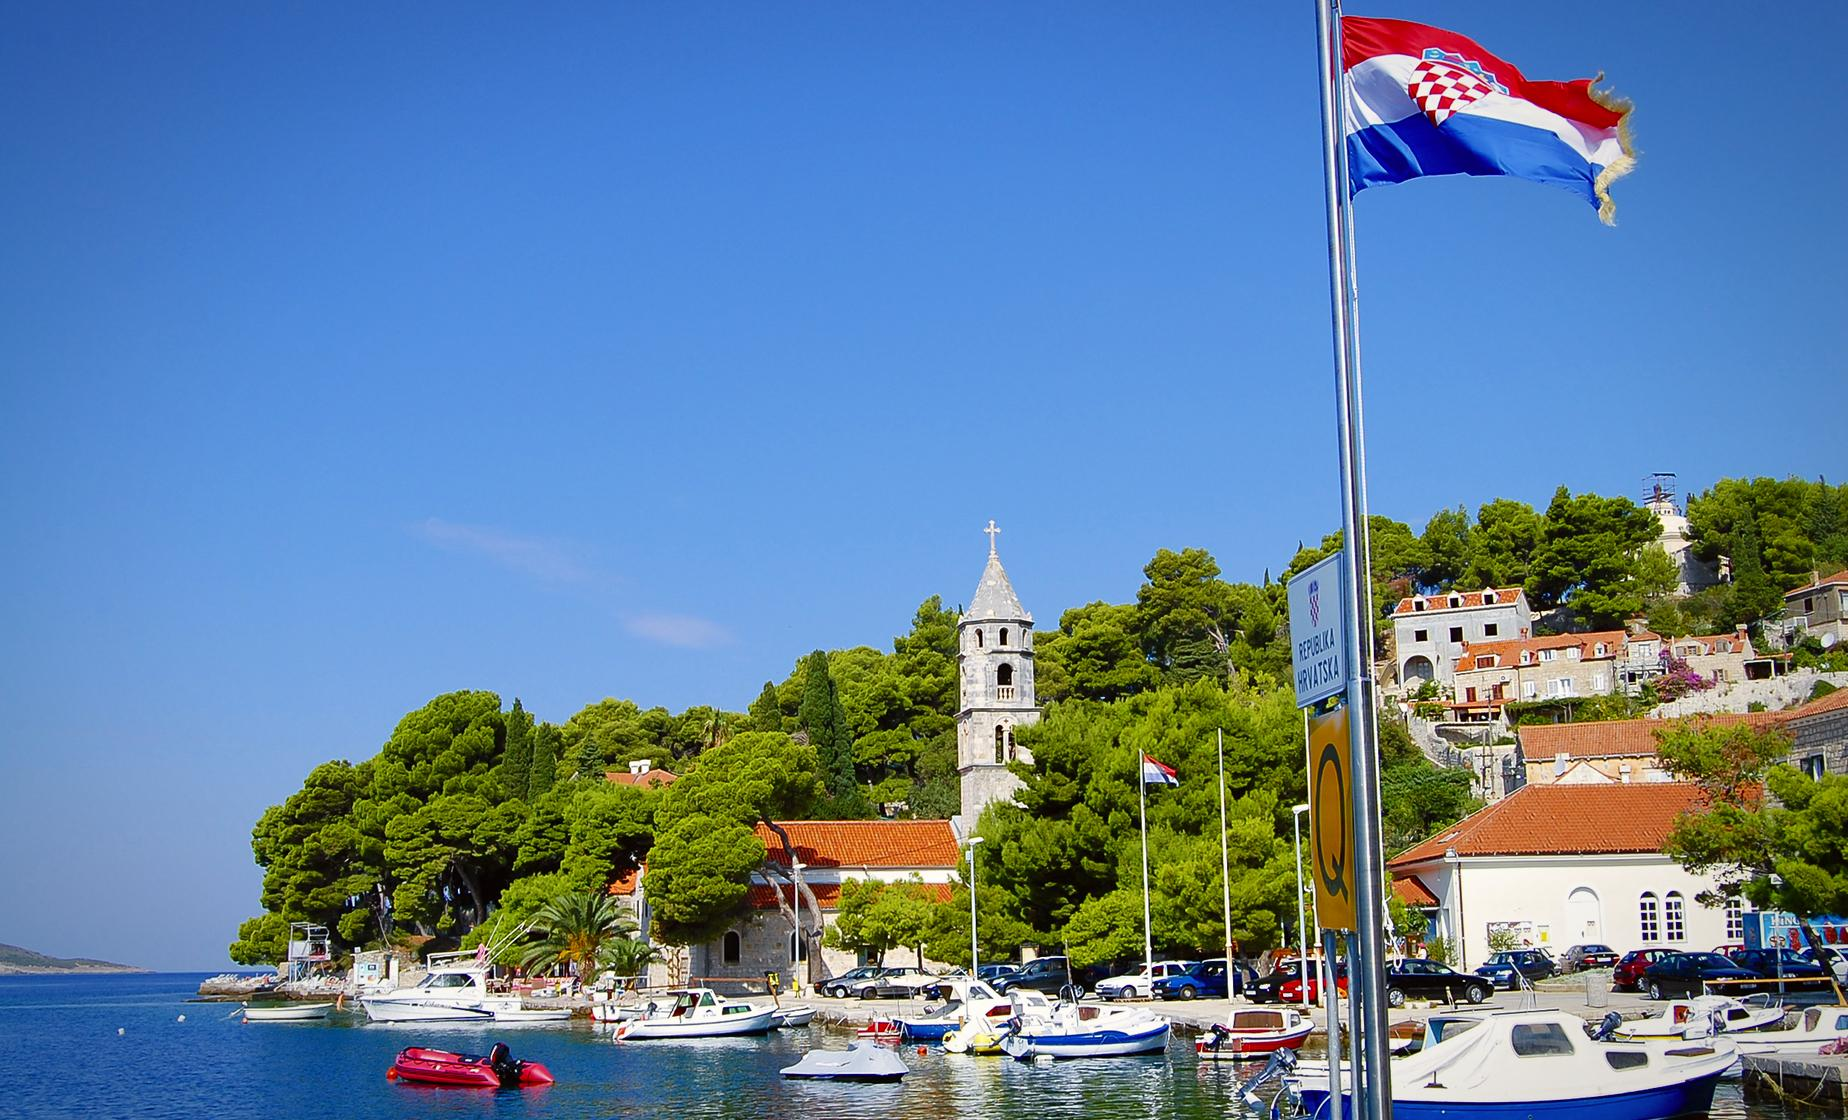 Private Seaside Resort of Cavtat and Dubrovnik